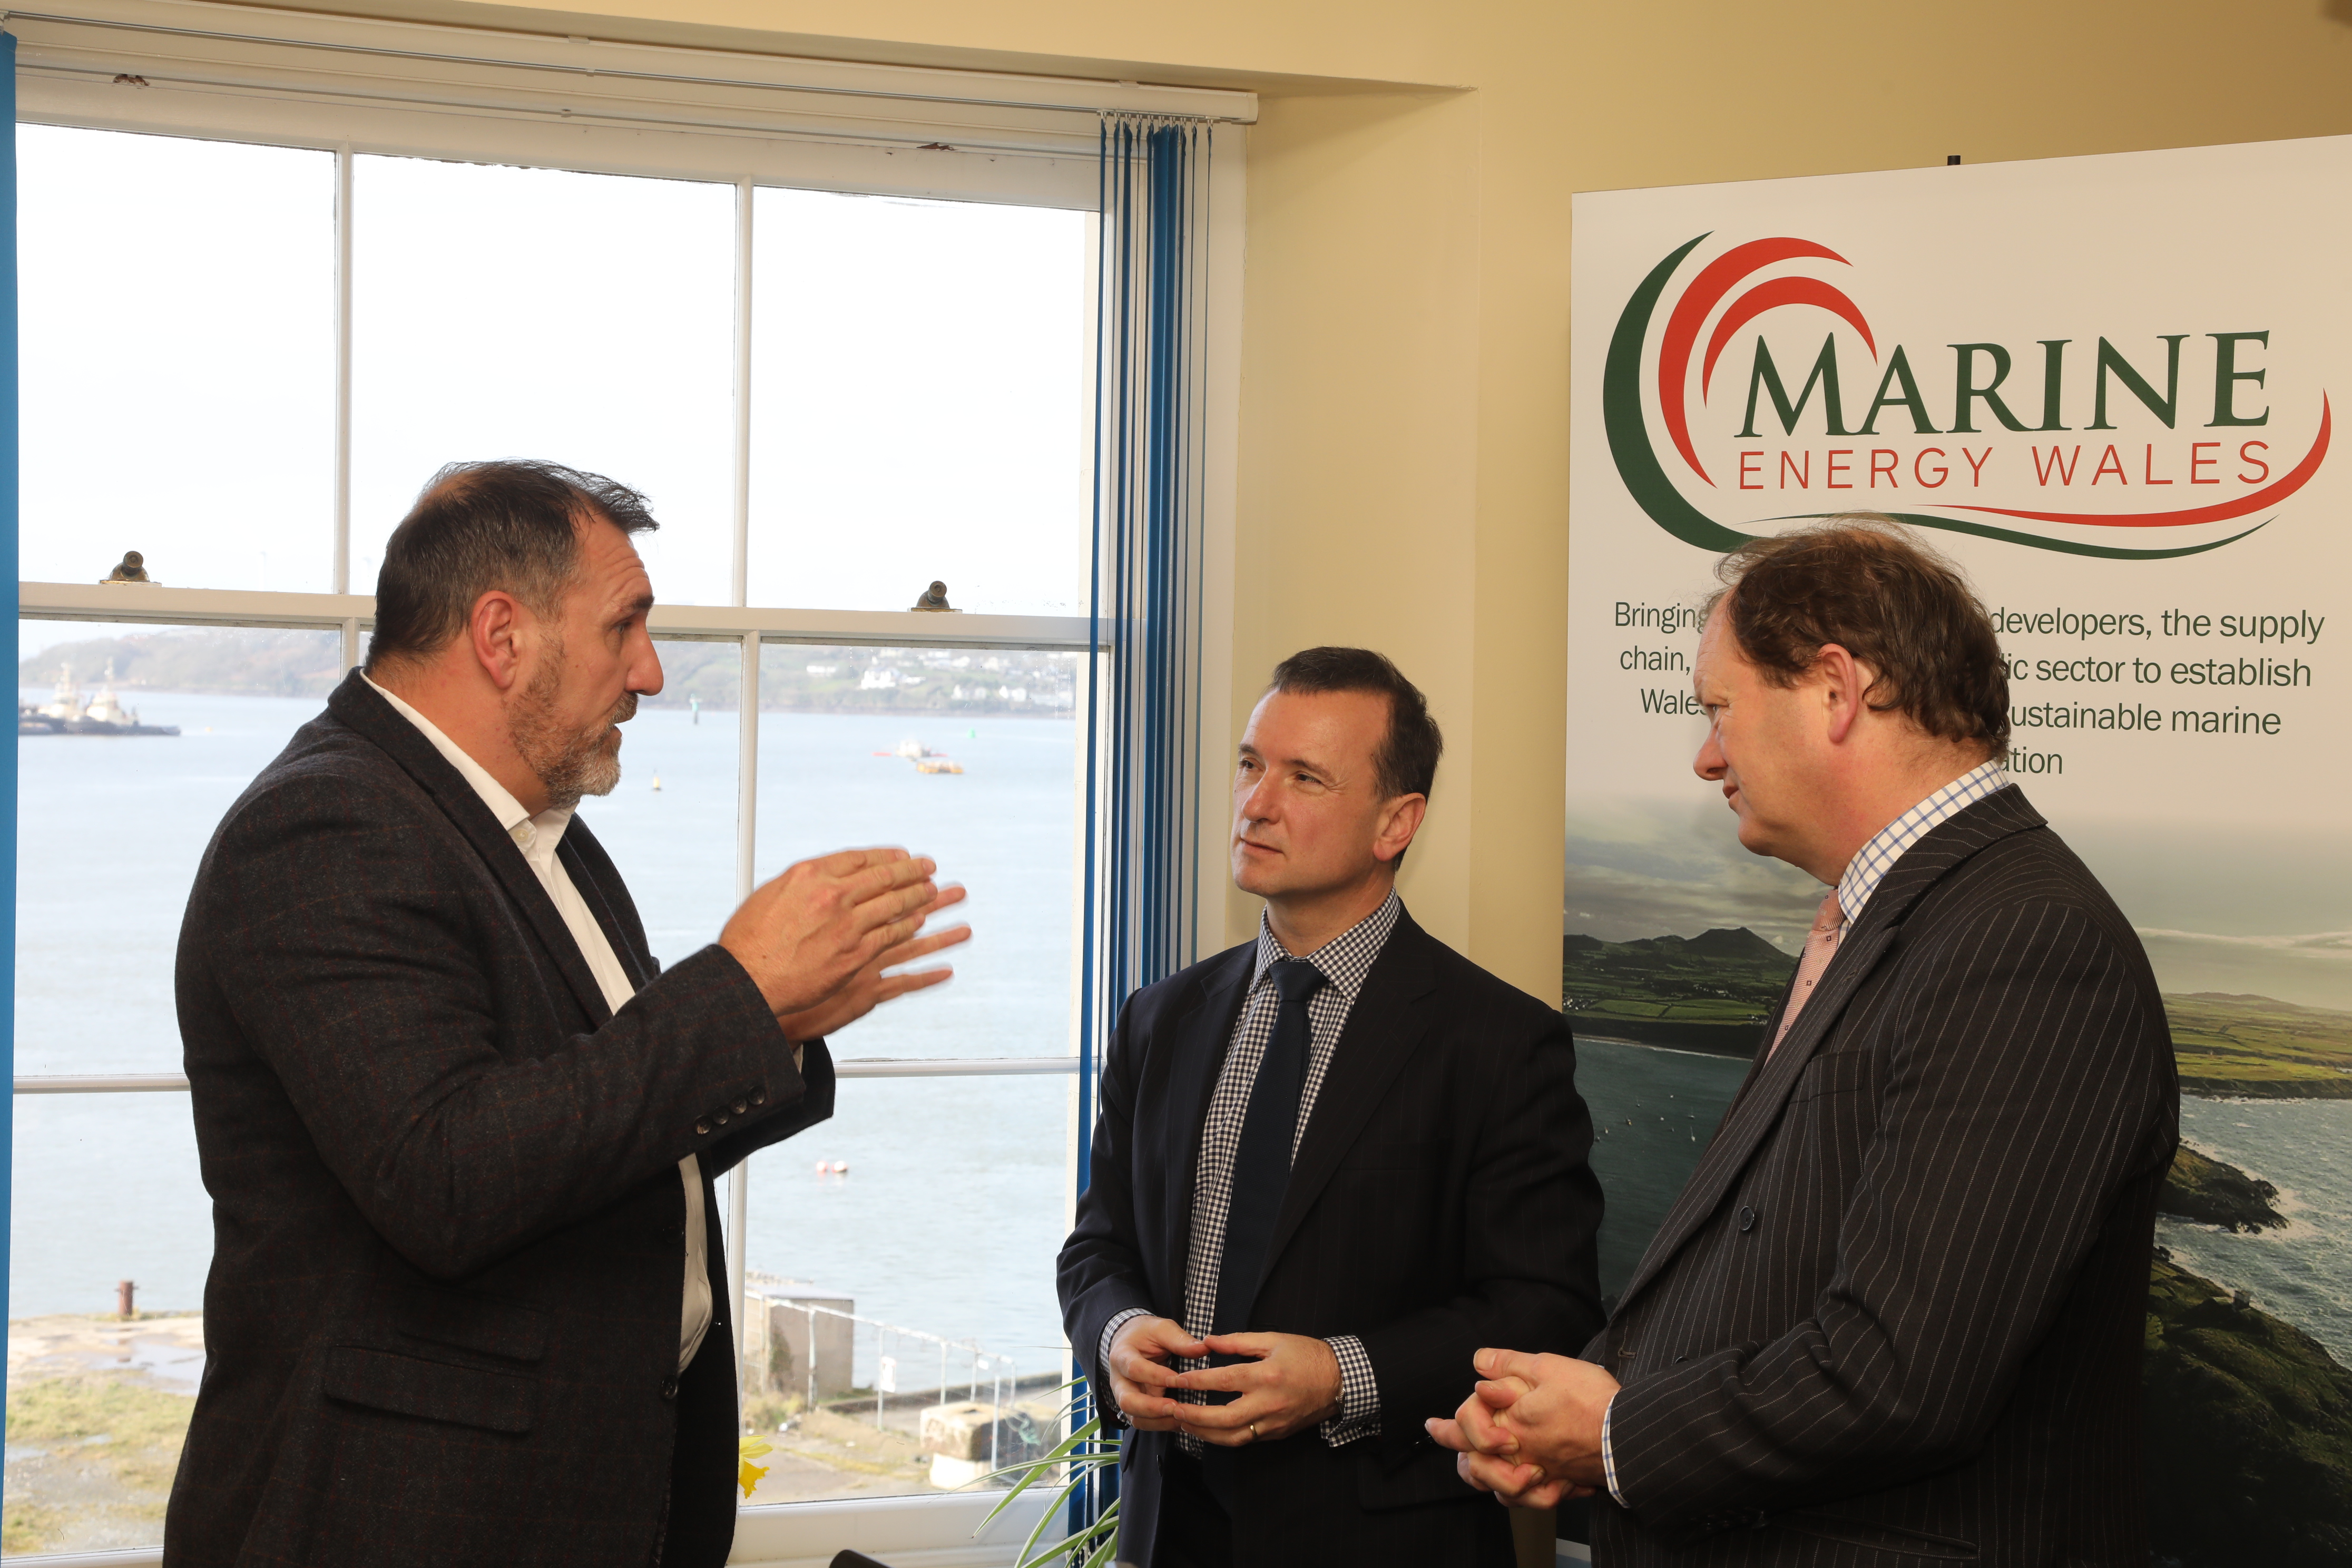 Welsh Secretary emphasises importance of City Deal to Pembrokeshire's future